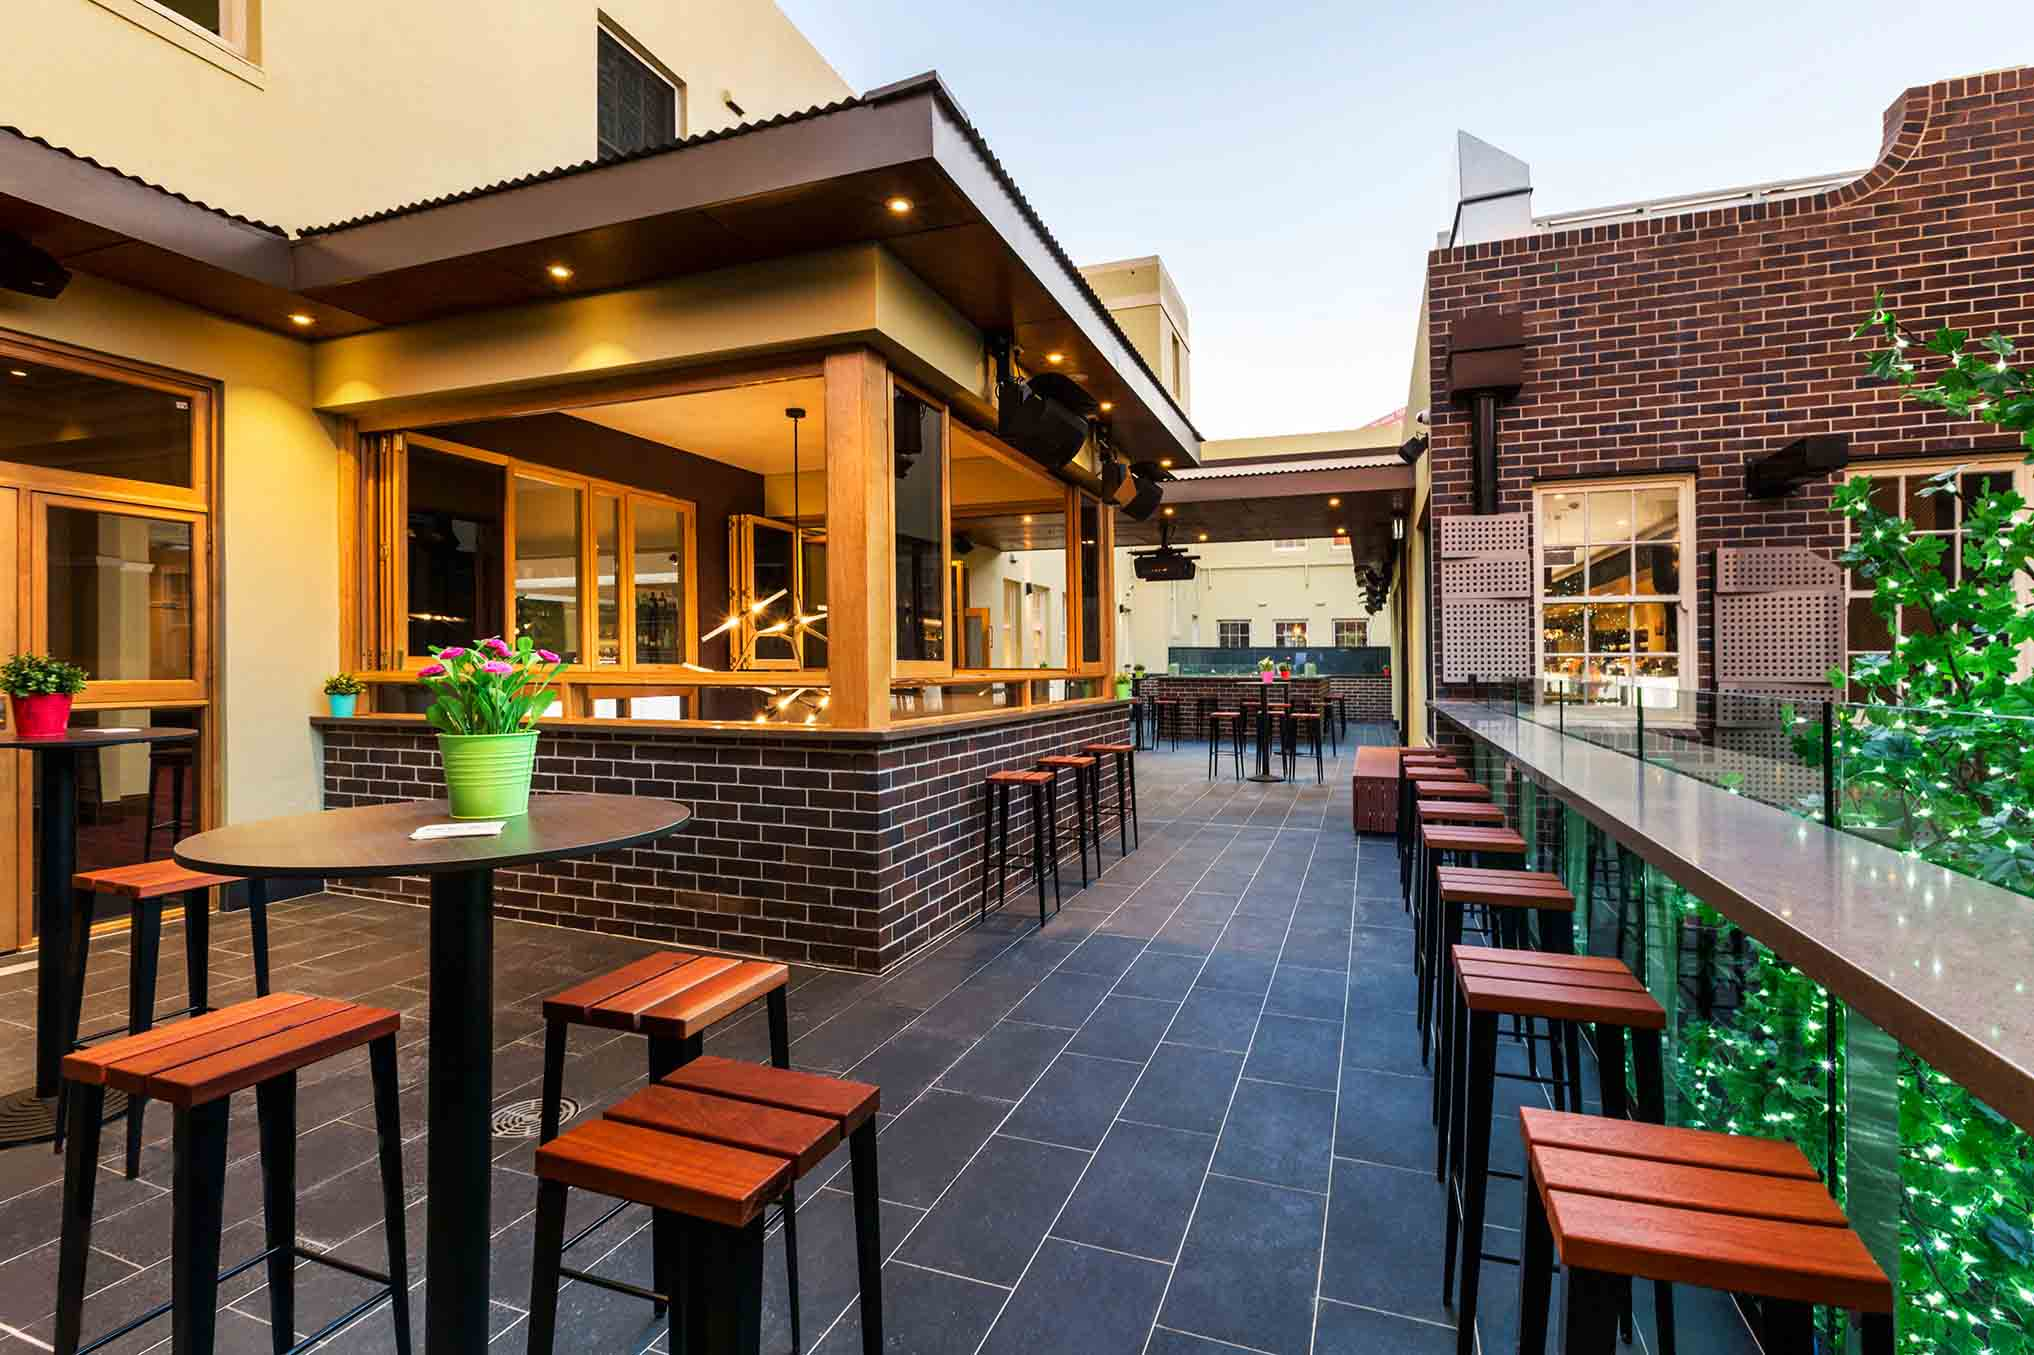 Crows nest hotel best outdoor bars hidden city secrets for Terrace bar menu